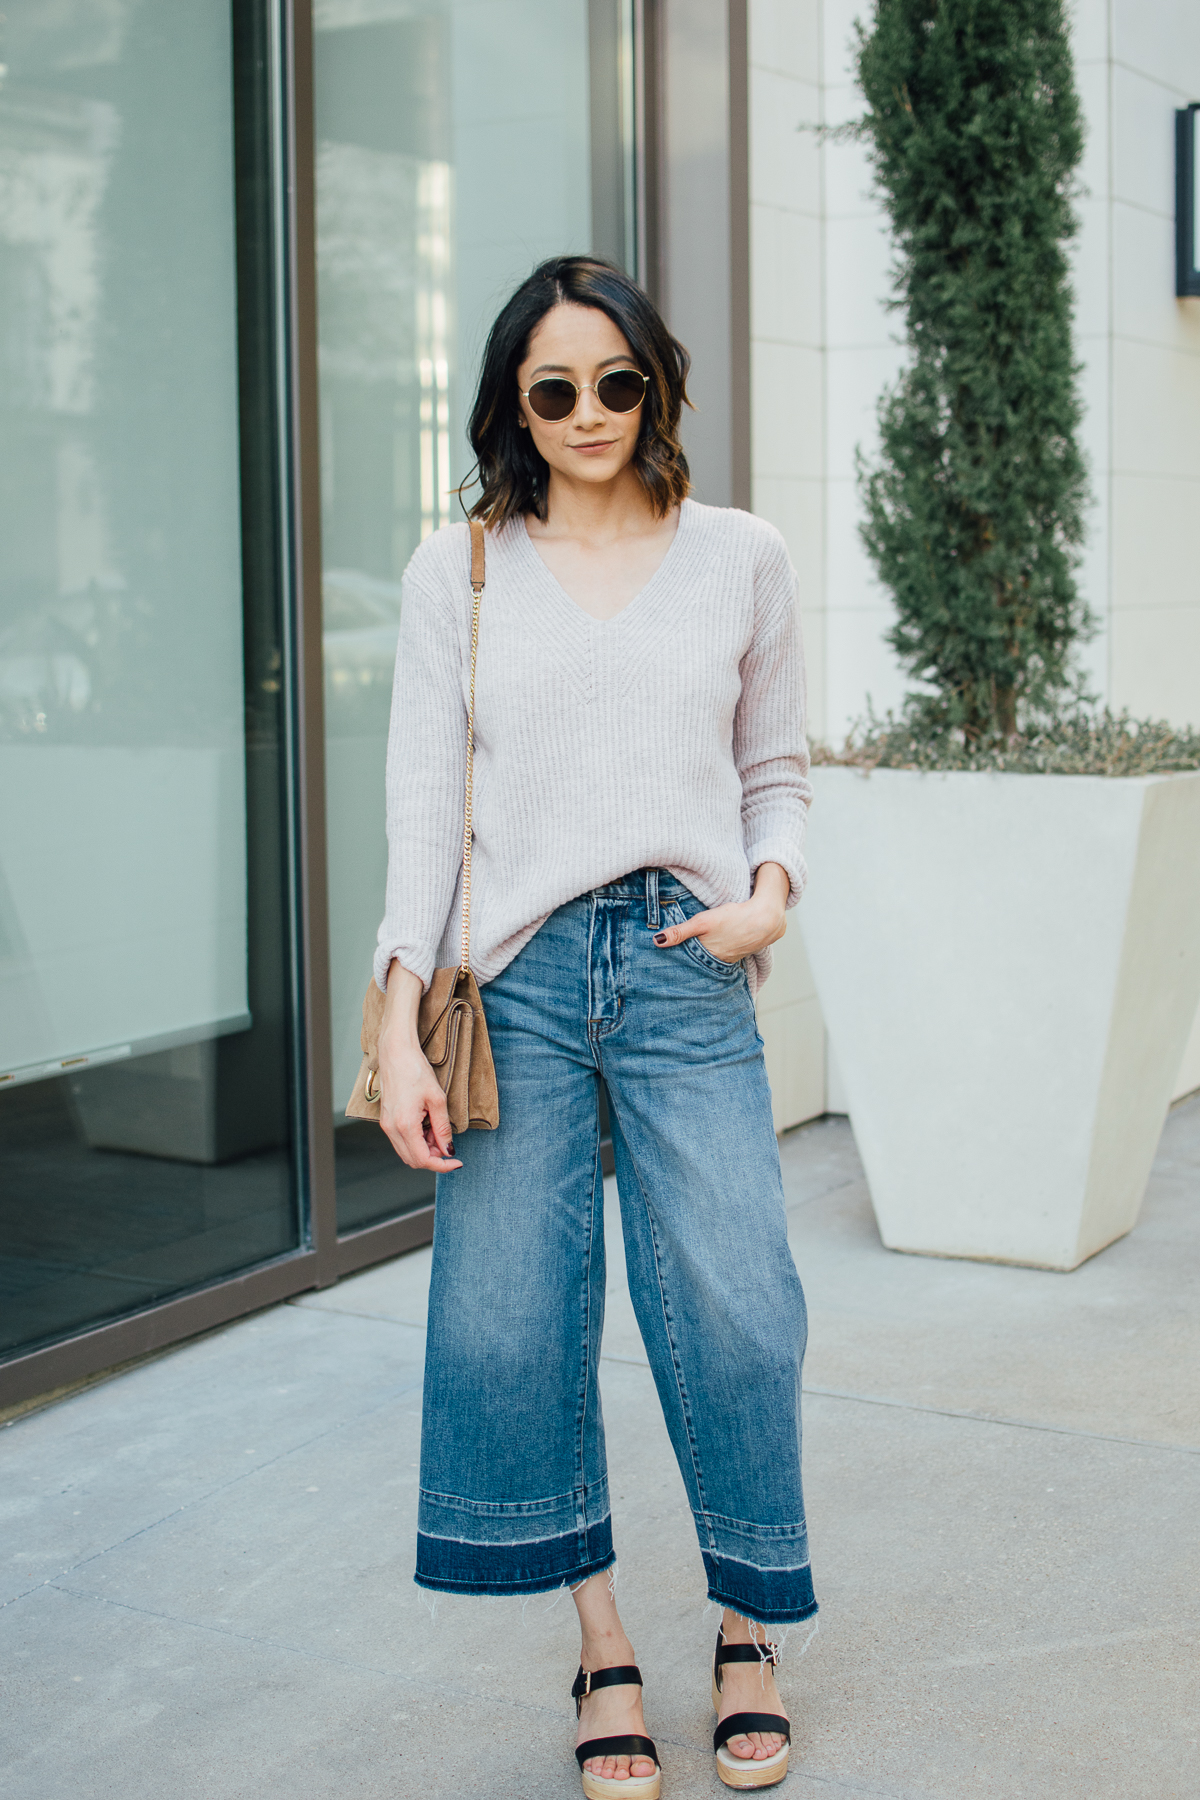 Daily craving wears a casual fall outfit with wide leg denim and v-neck sweater